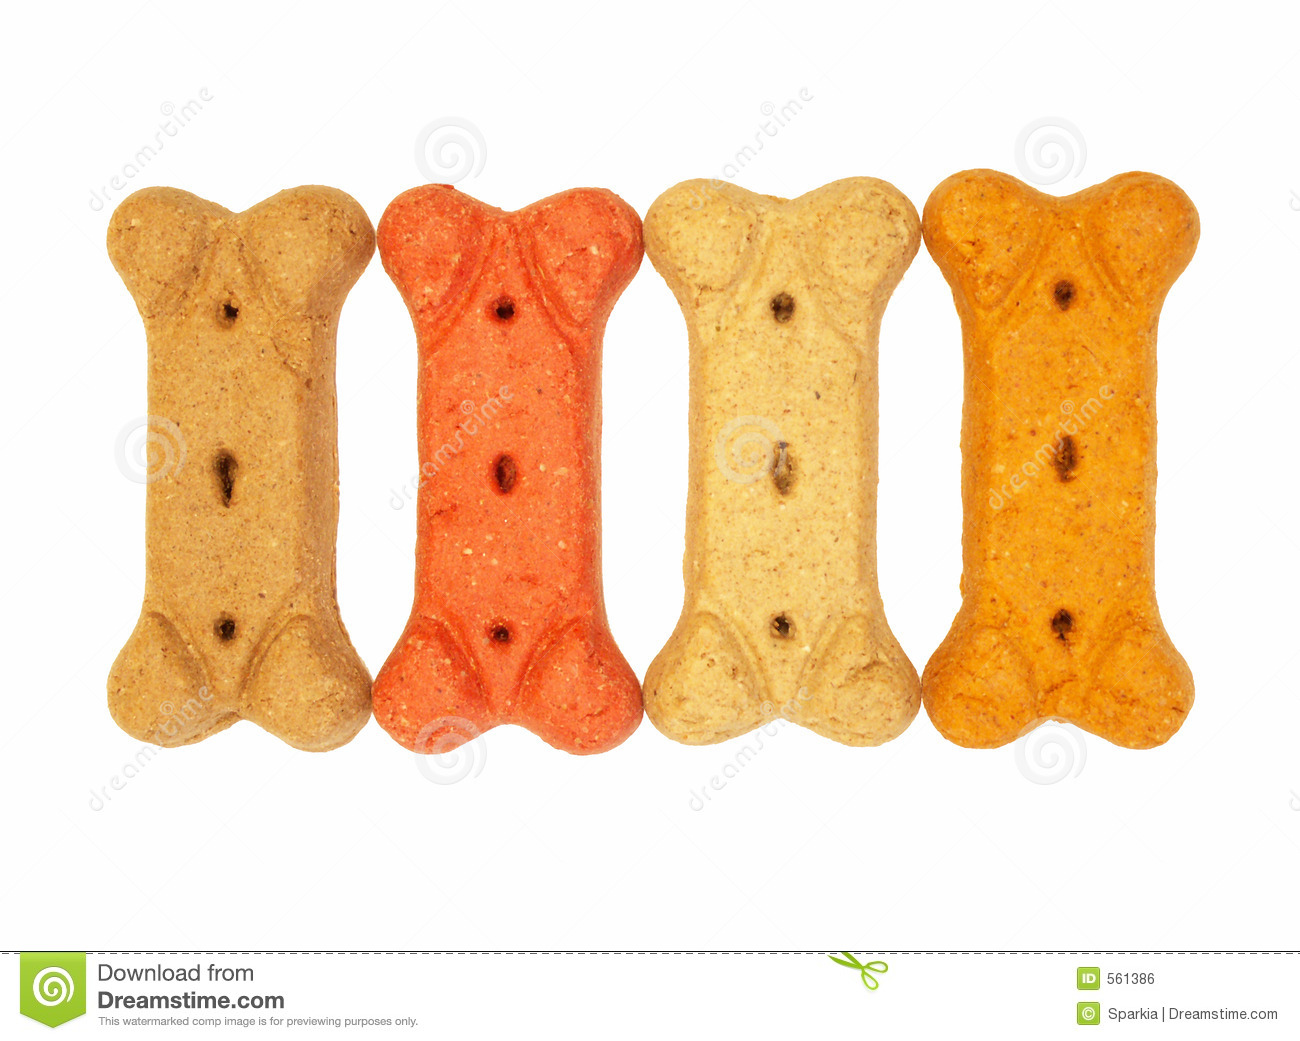 Dog bone biscuits stock photo. Image of snack, food, train ...